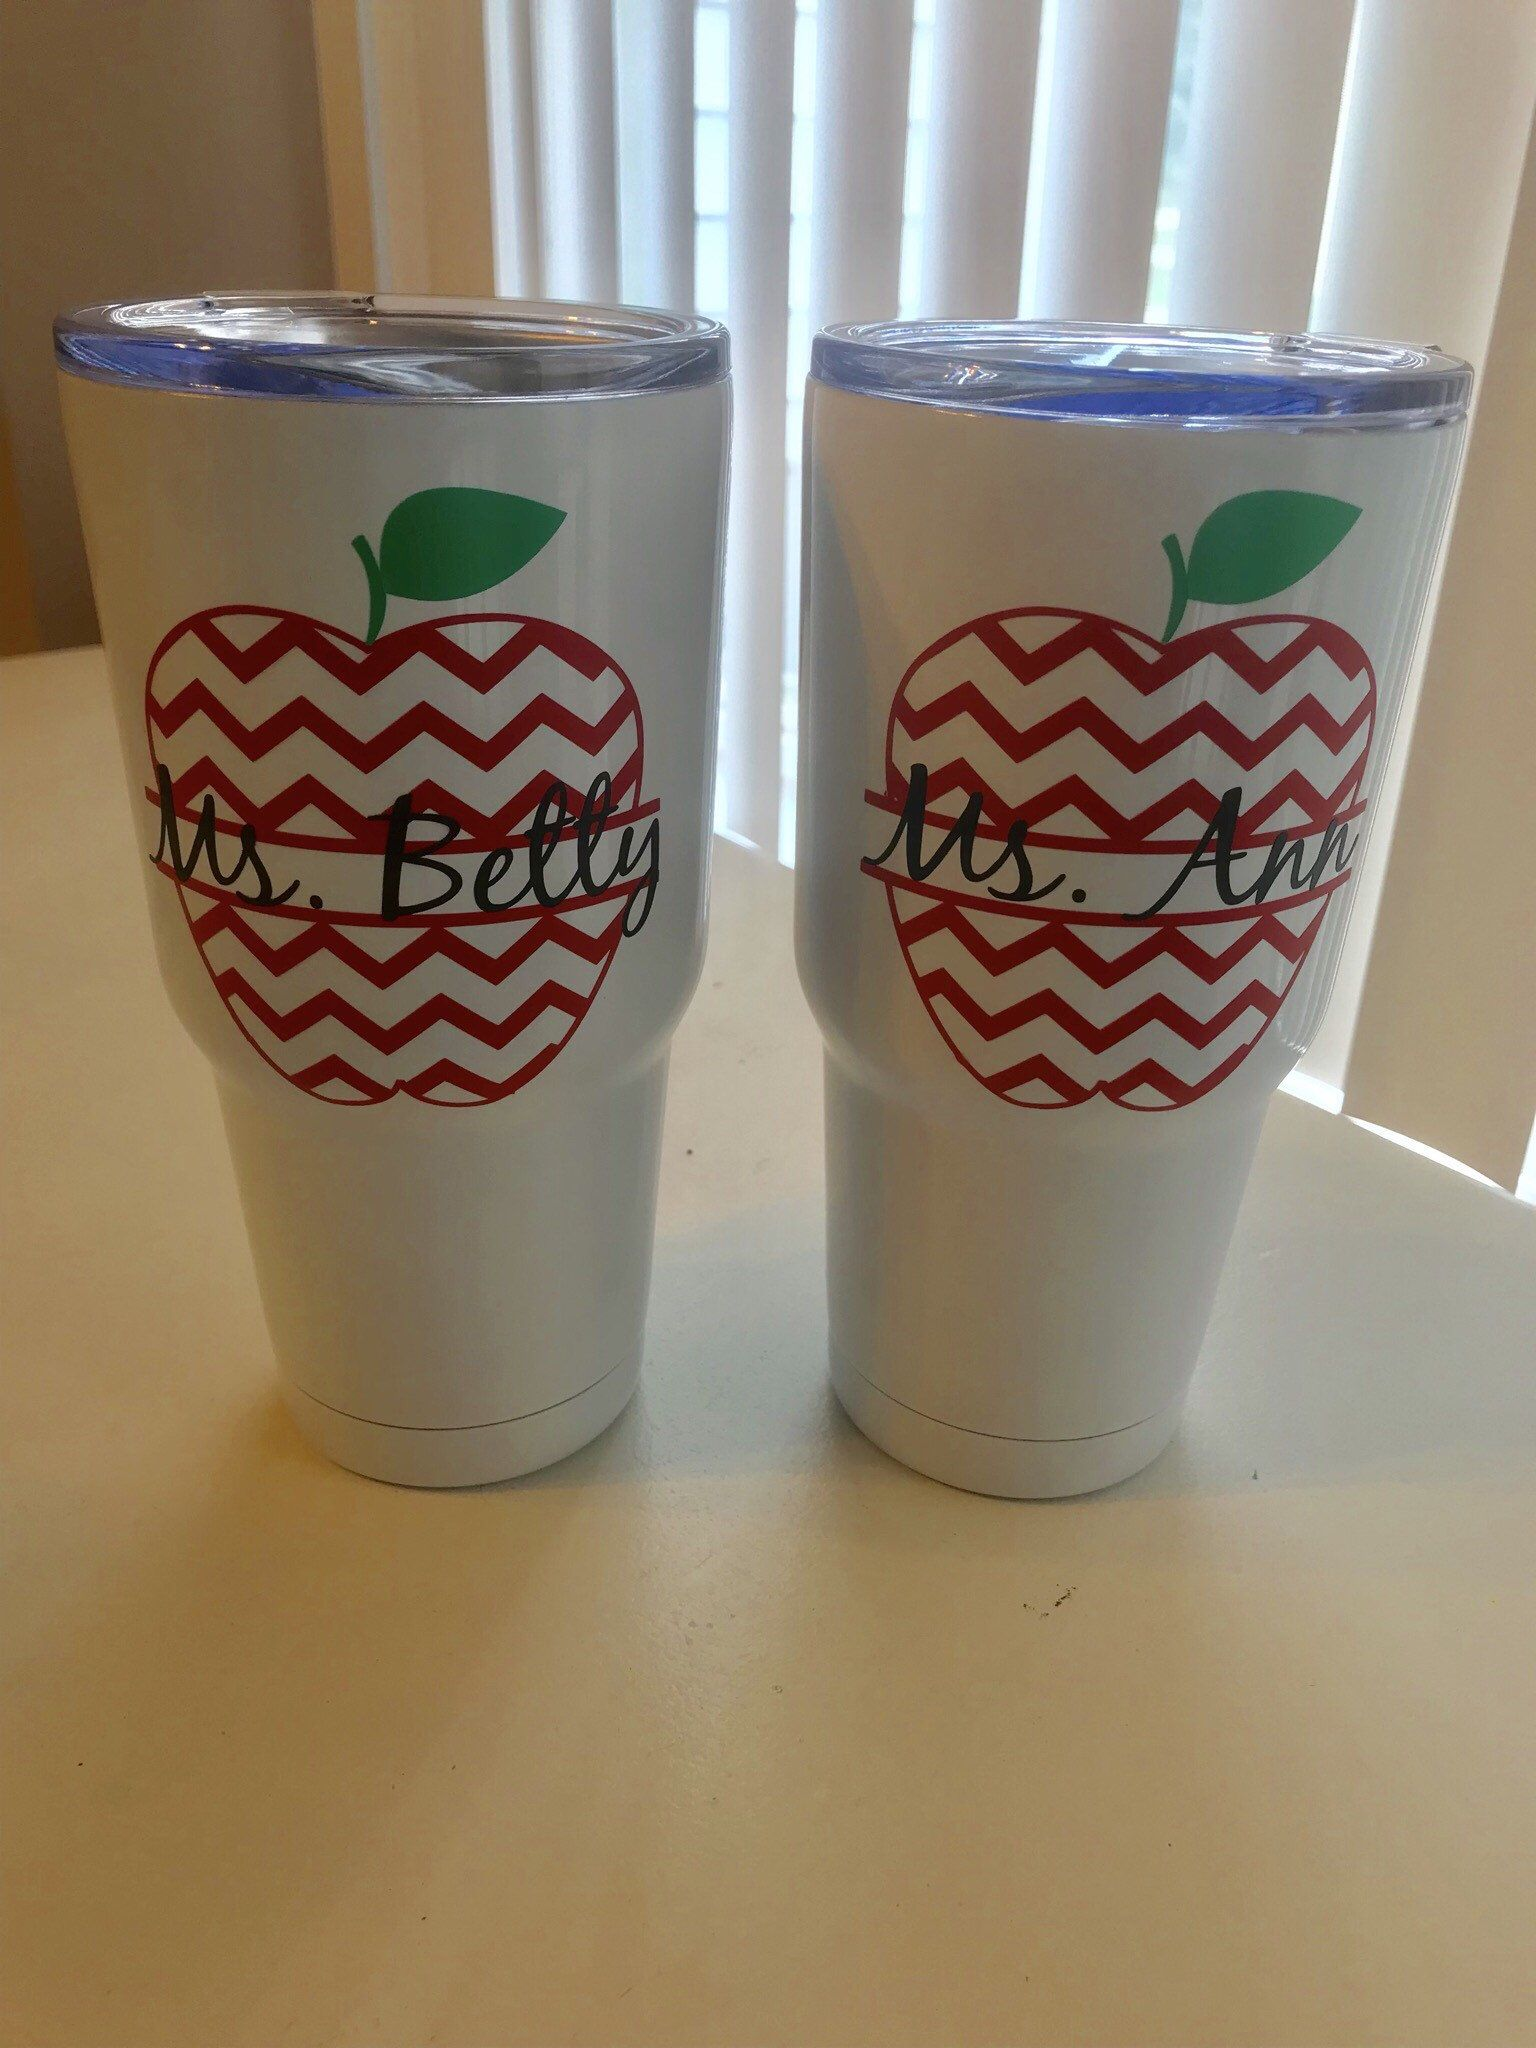 dec185dc797 Excited to share this item from my #etsy shop: Customized tumbler custom  tumbler personalized tumbler stainless tumbler teacher tumbler summer beach  cup ...